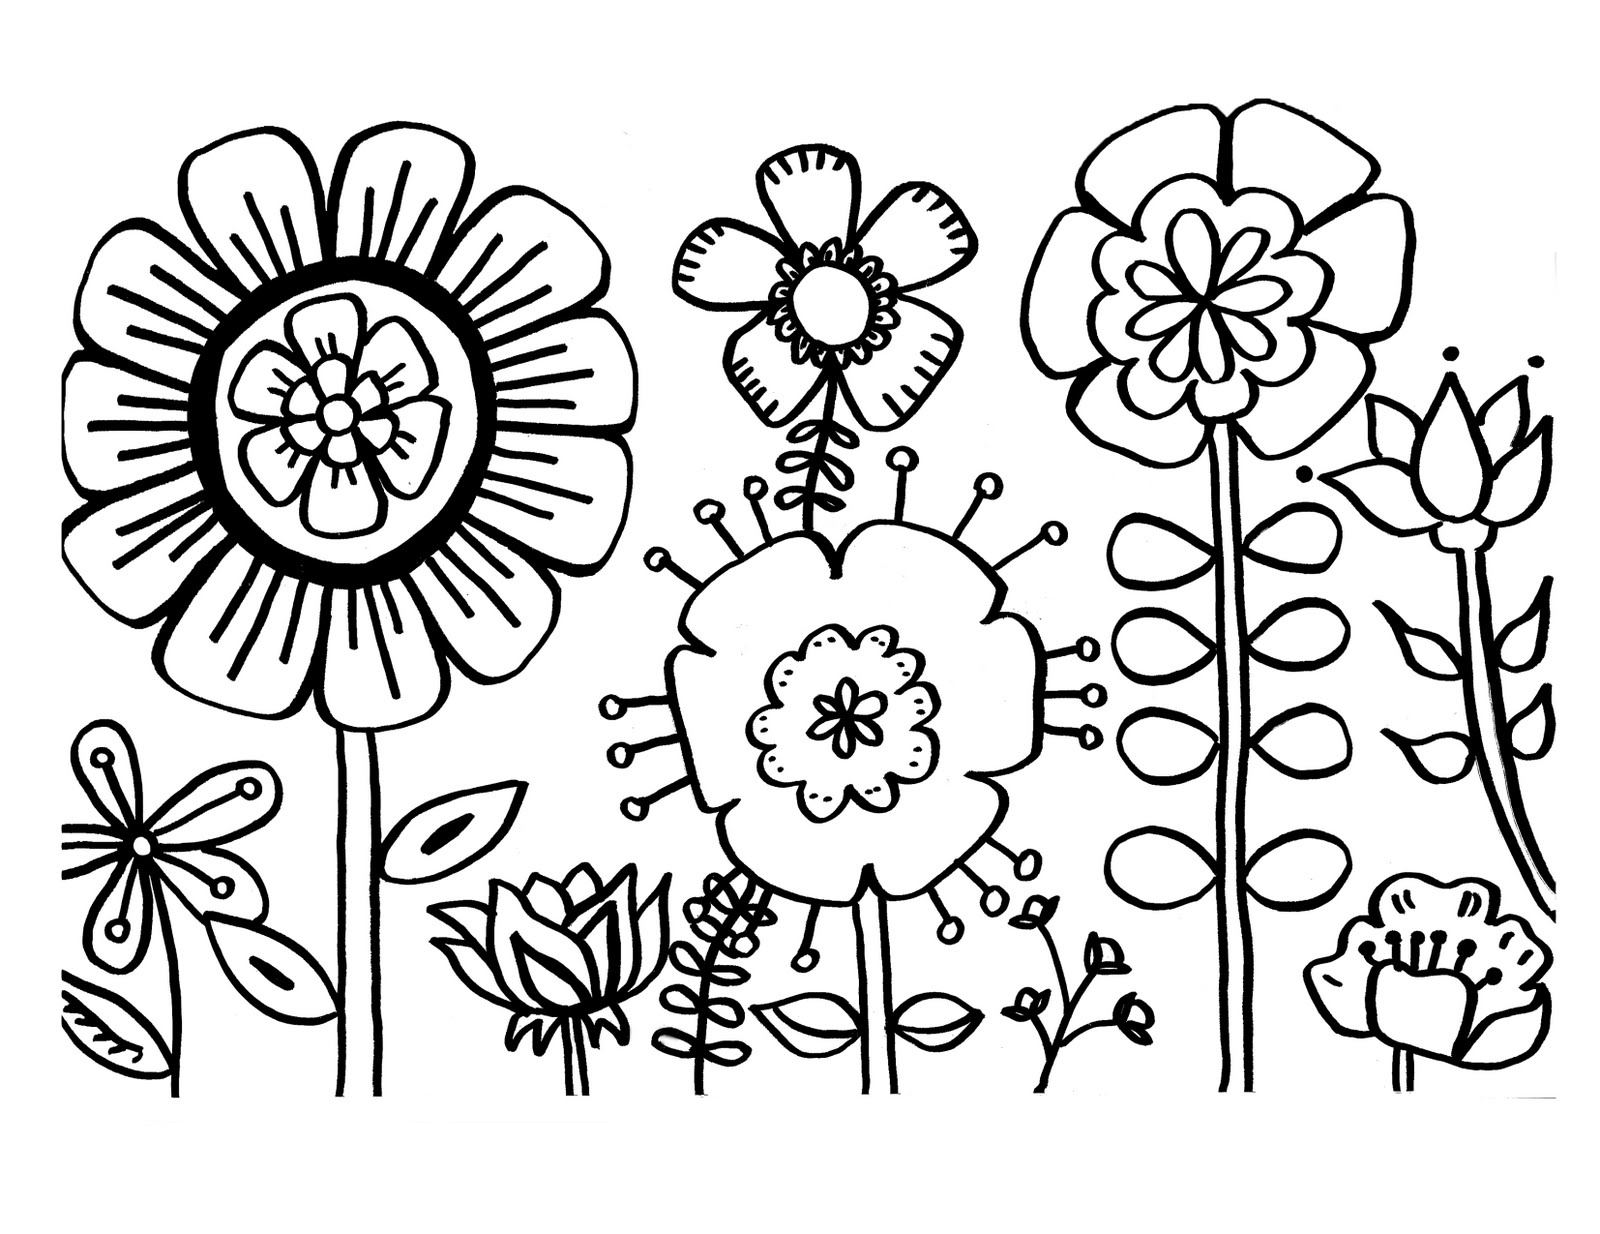 free flower coloring pages flowers to colour - Printable Coloring Pages Flowers